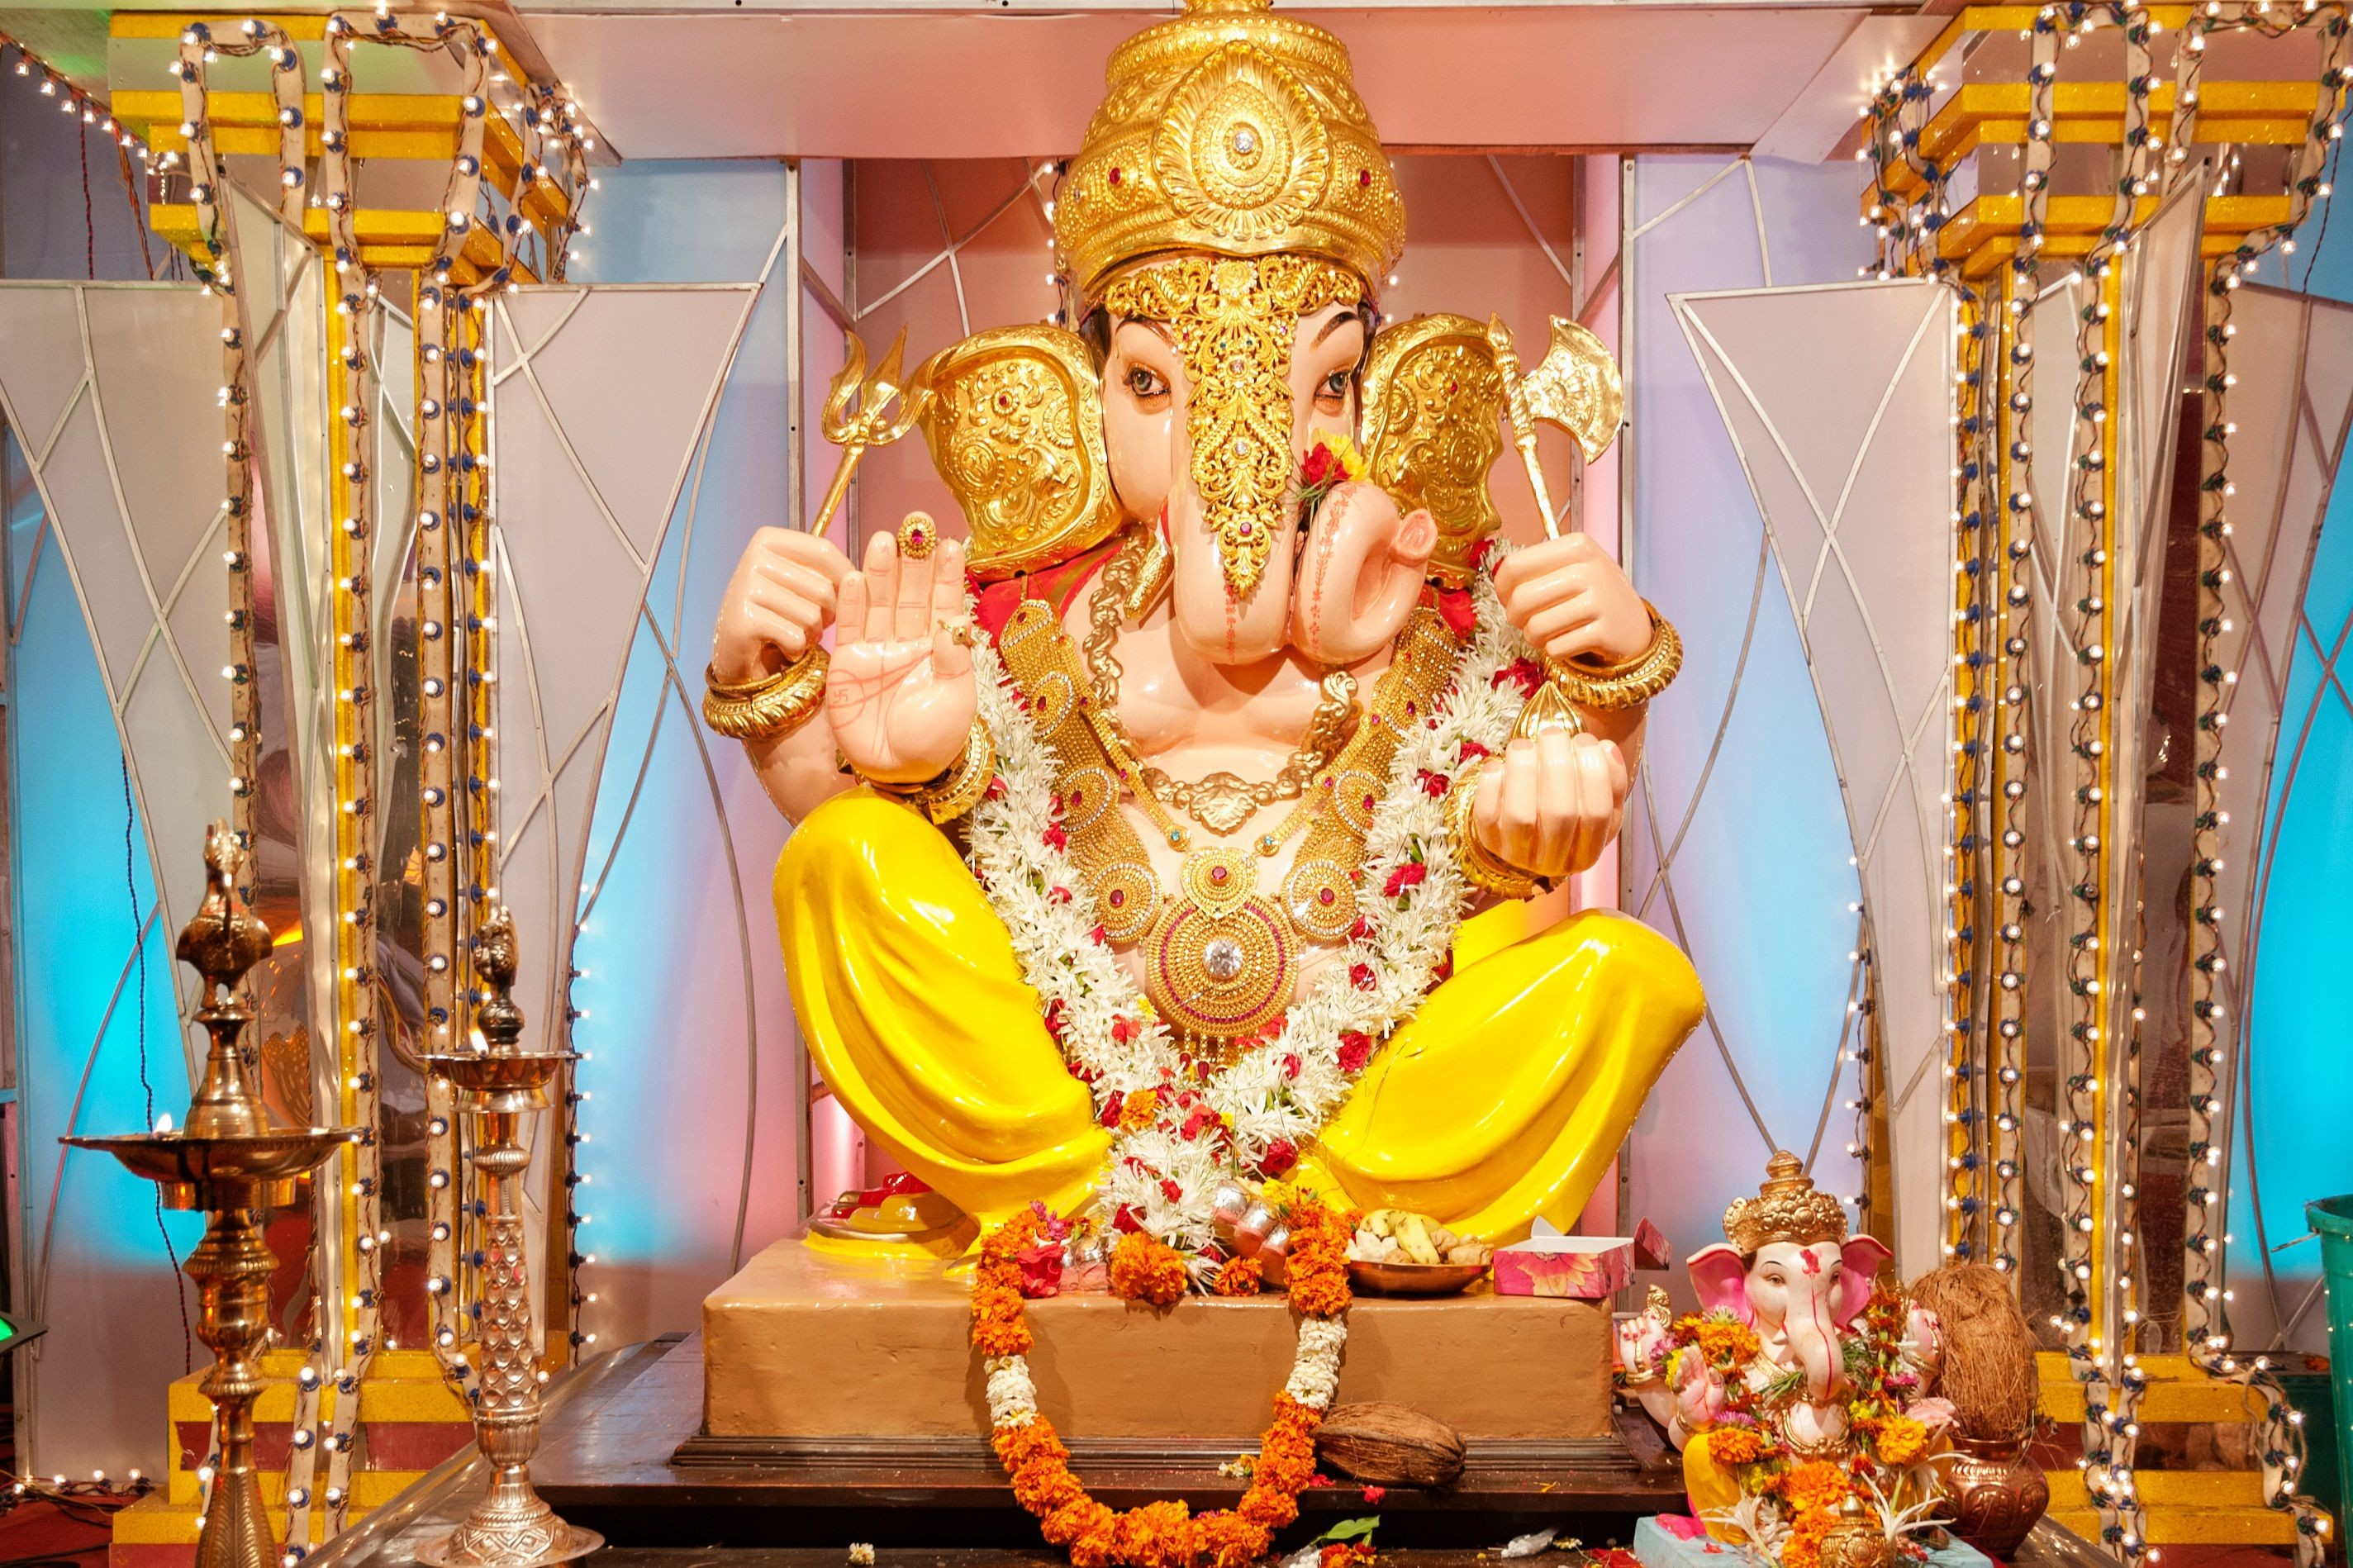 2019 March Calendar Telugu Más Recientes when is Ganesh Chaturthi In 2019 2020 and 2021 Of 2019 March Calendar Telugu Más Populares 12 Month Calendar 2019